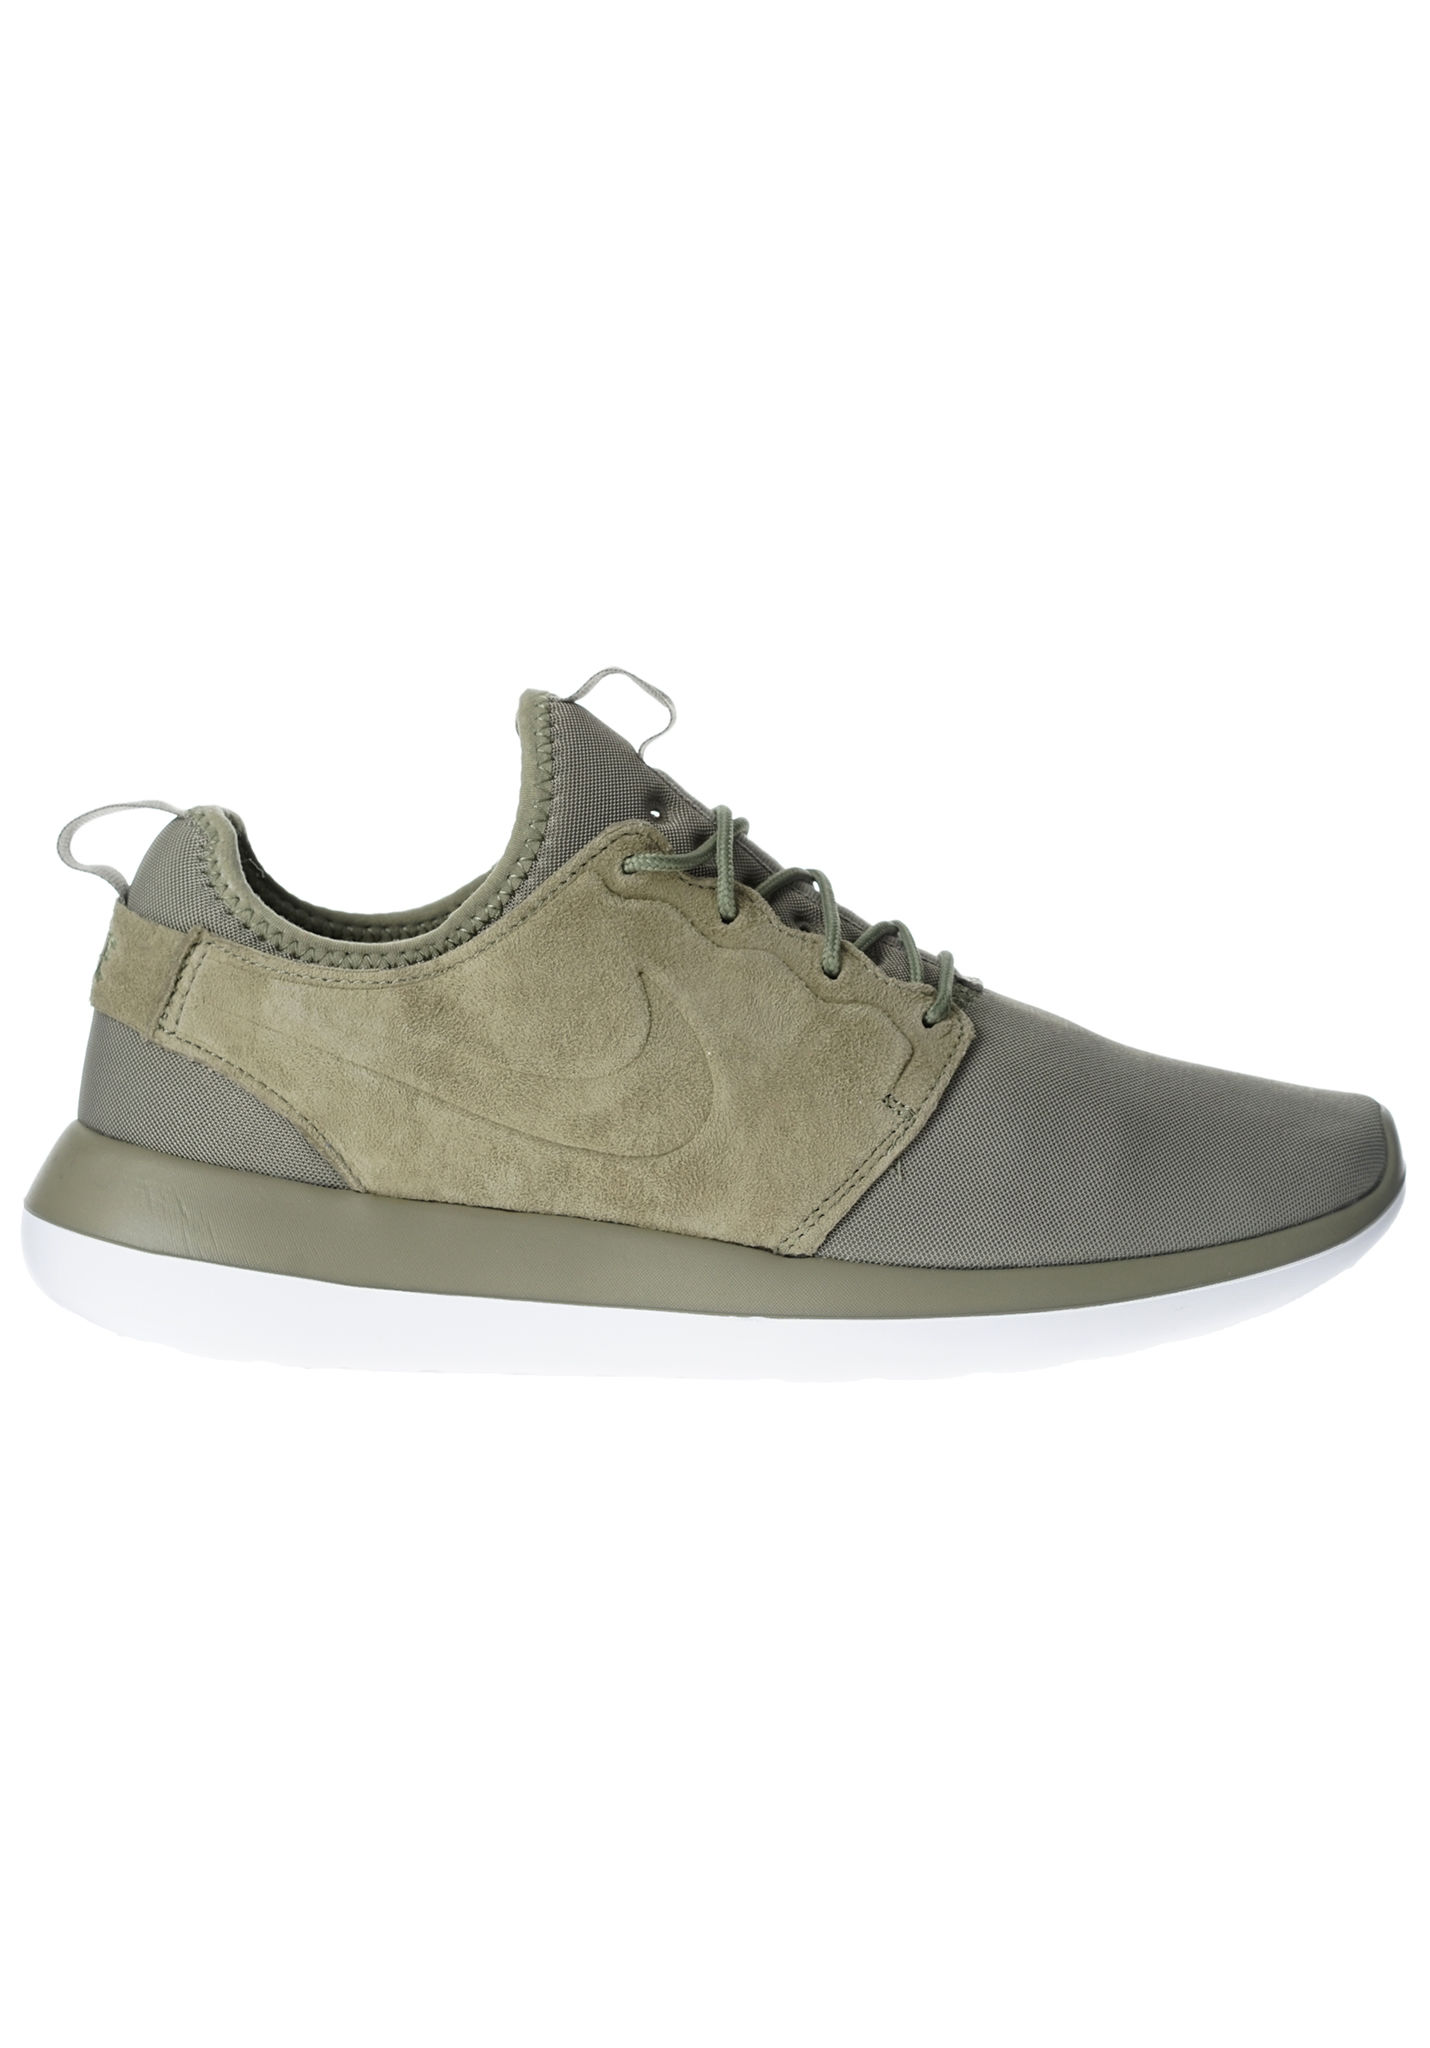 thoughts on sale usa online new high quality separation shoes 11e2c a771a nike roshe two groen - yashulyrics.com